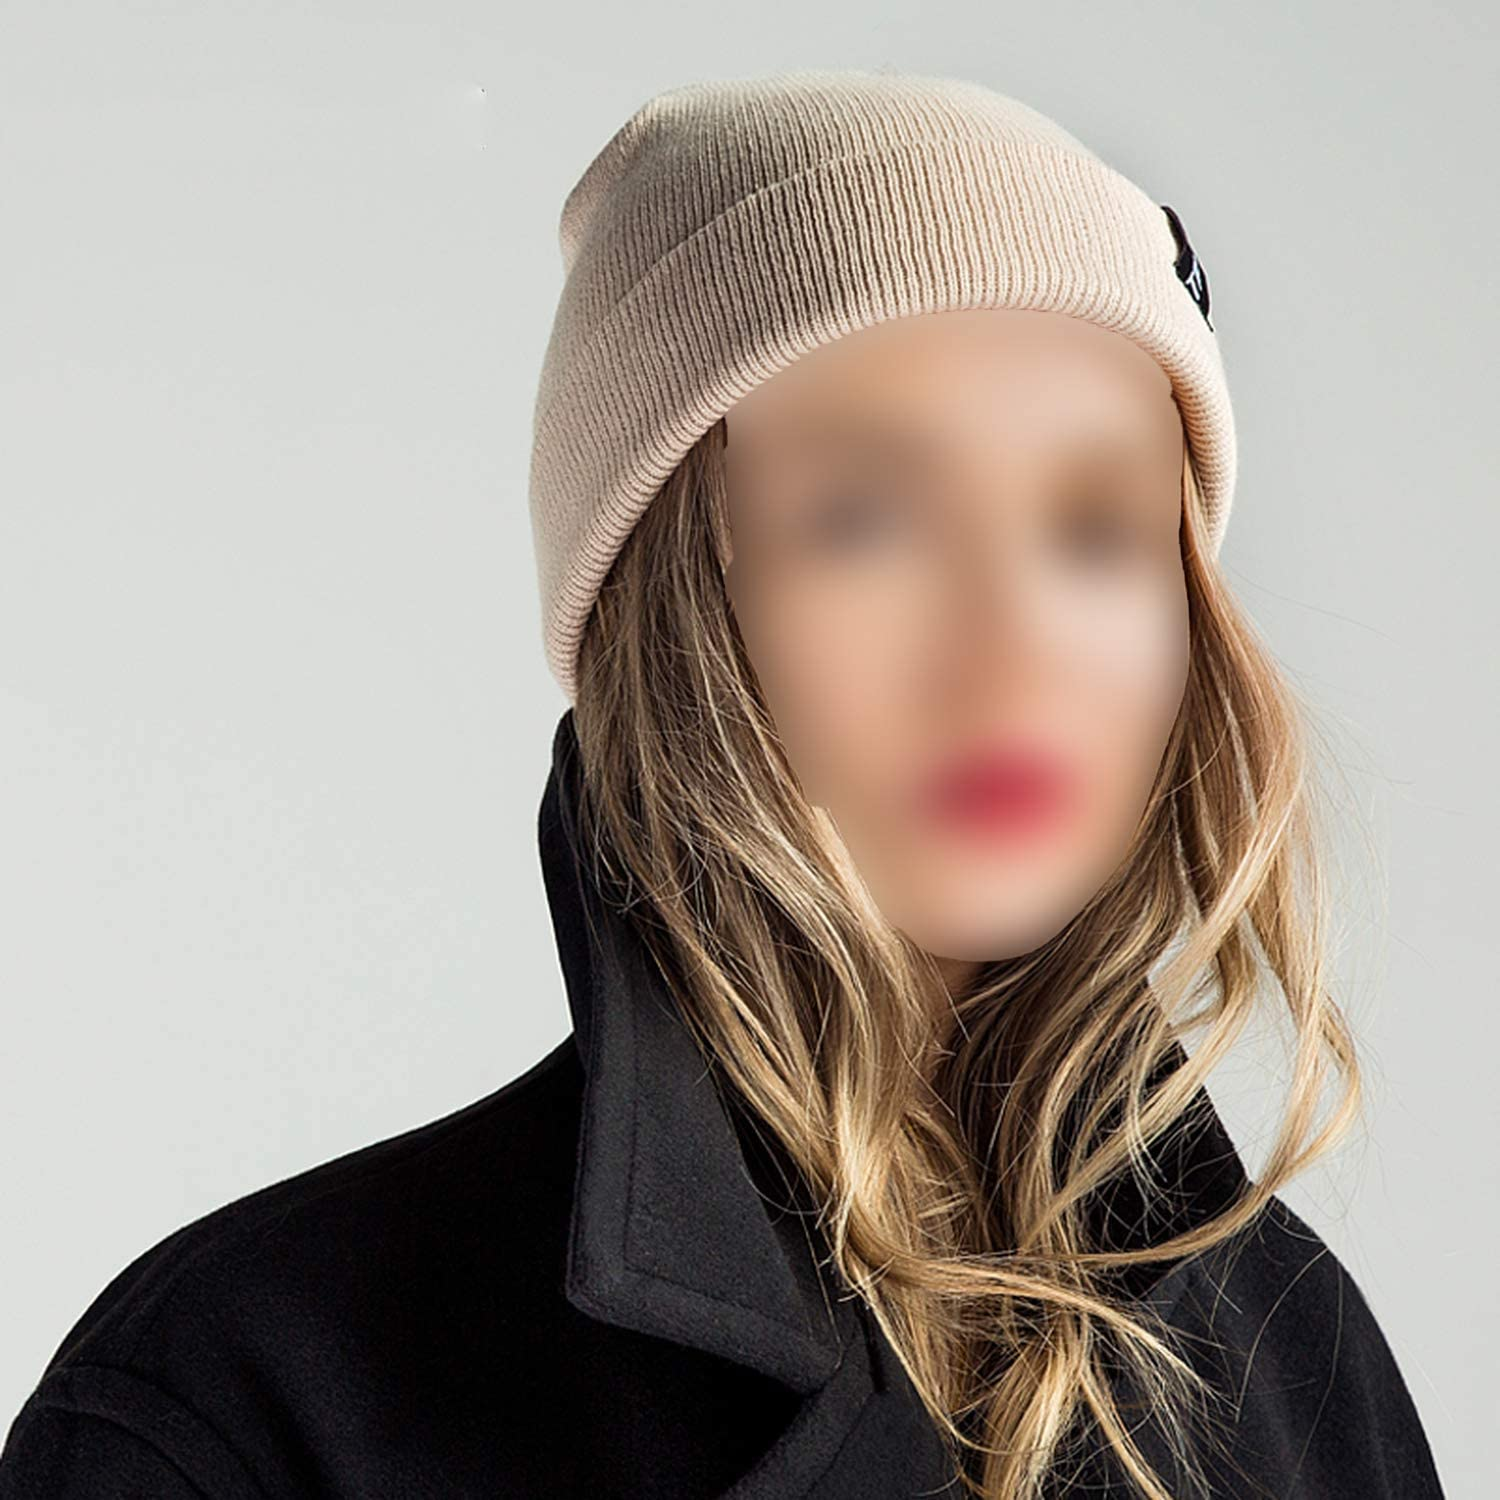 Fashion Knitted Hats Caps for Men Women Hats Warm Winter Hats Solid Color Unisex Cap Drop Shipping